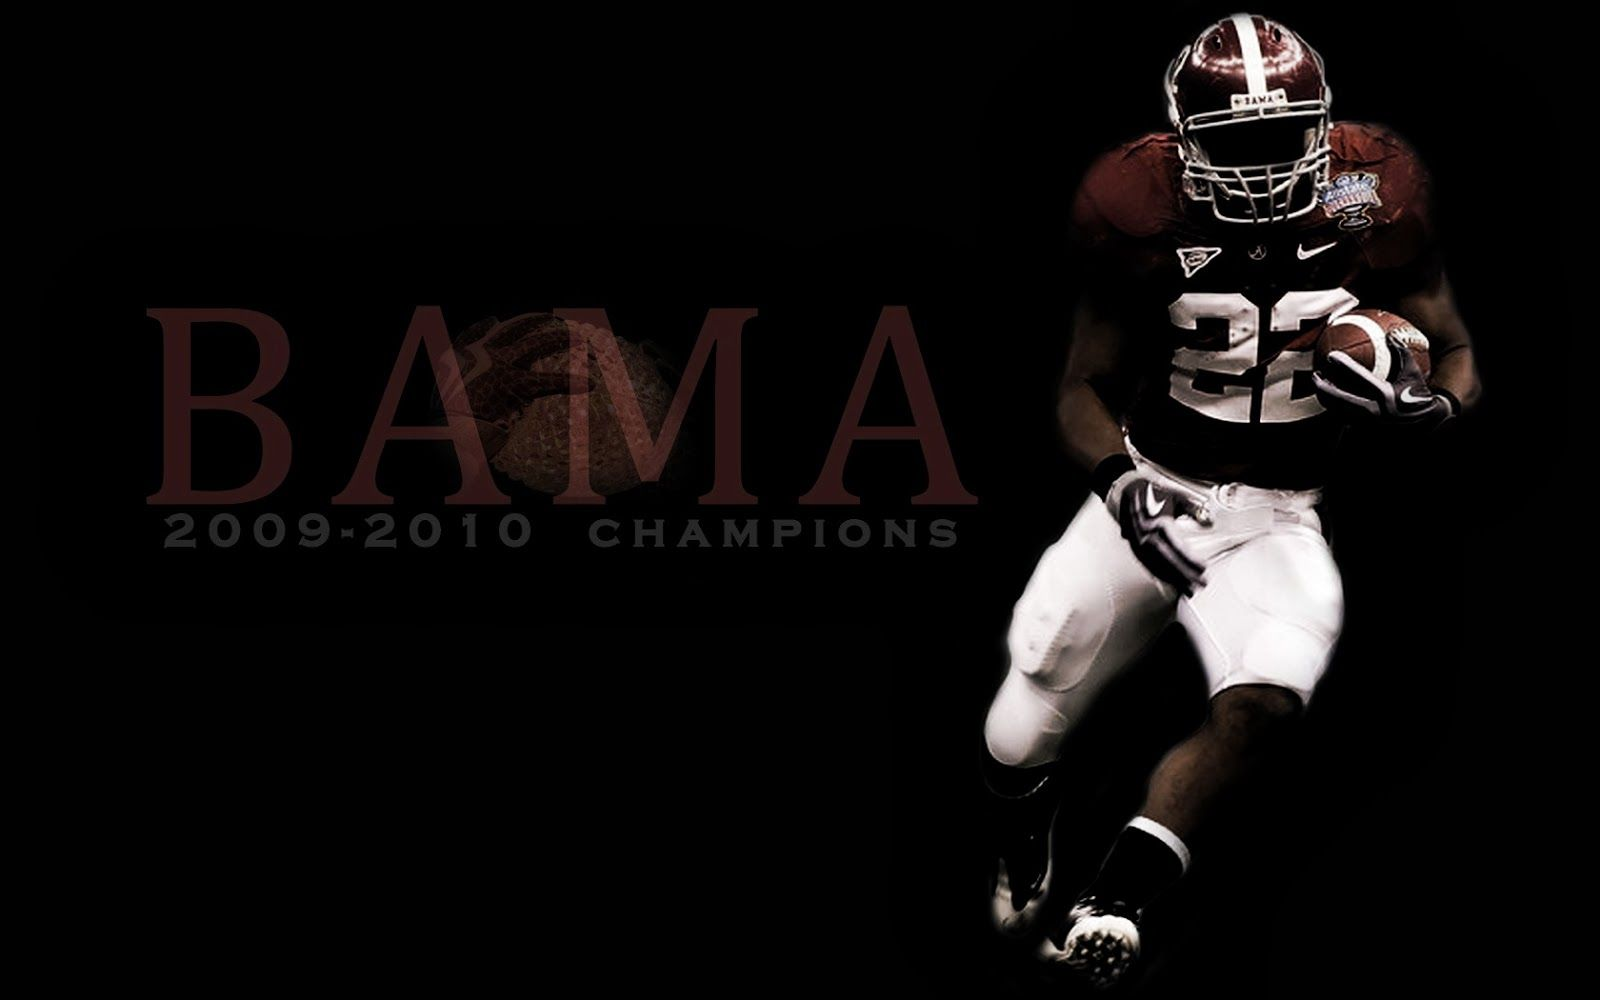 Pin By Barco Blanton On Roll Tide Roll Alabama Football Team Football Wallpaper Alabama Football Pictures